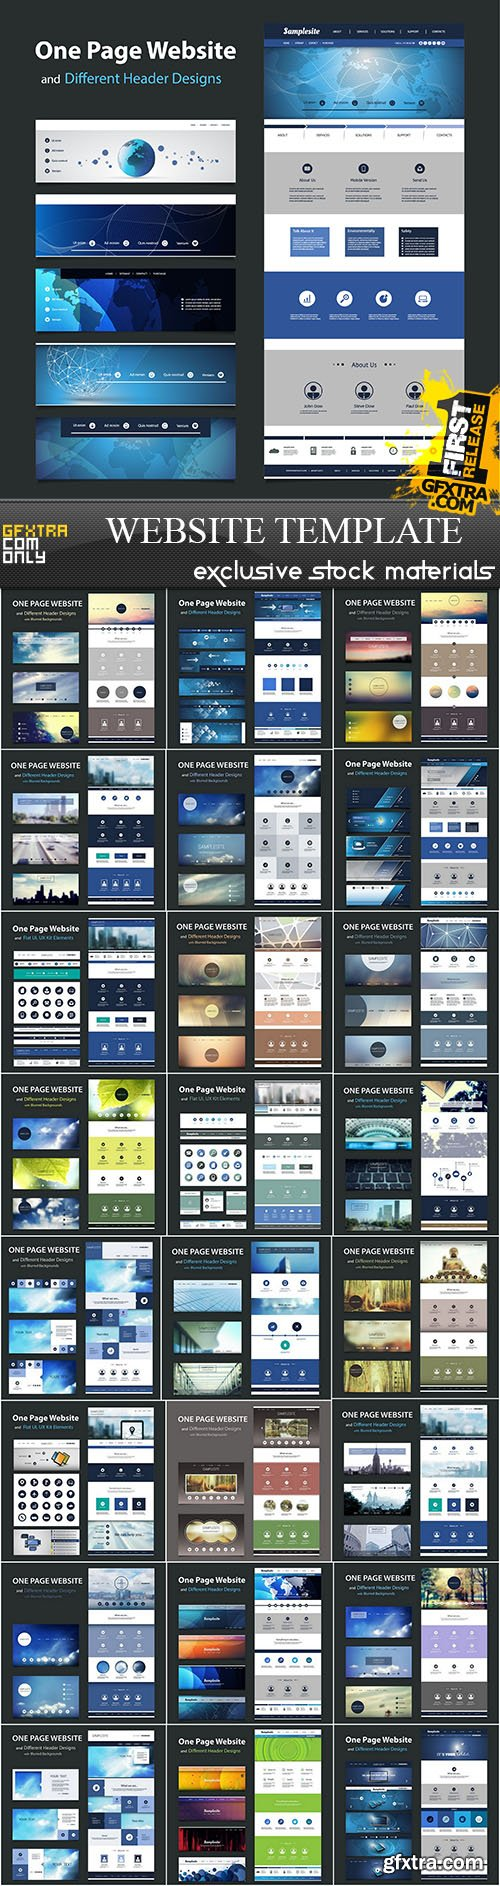 SS Website Template and Different Header Designs, 25xEPS